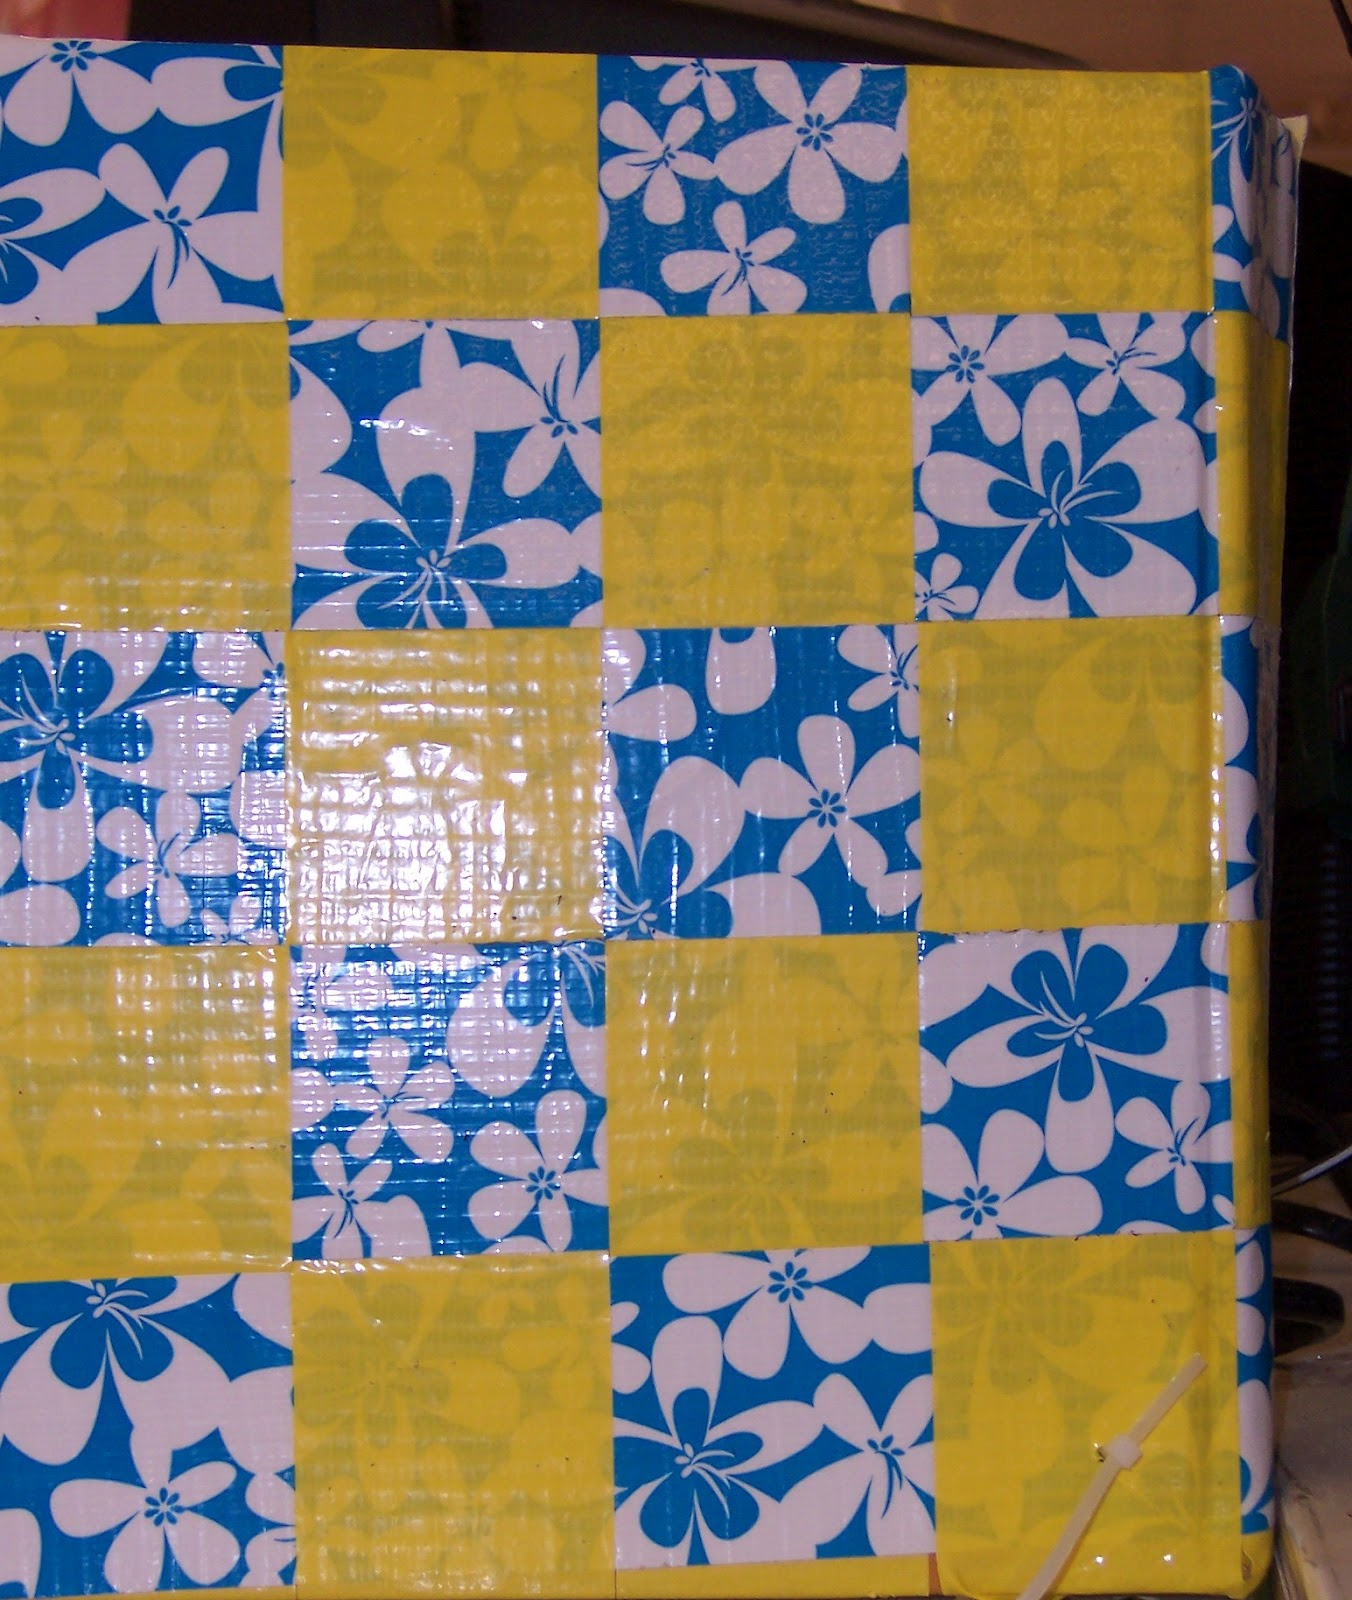 How To Make A Book Cover With Duct Tape : Ideas and inspirations duct tape book cover